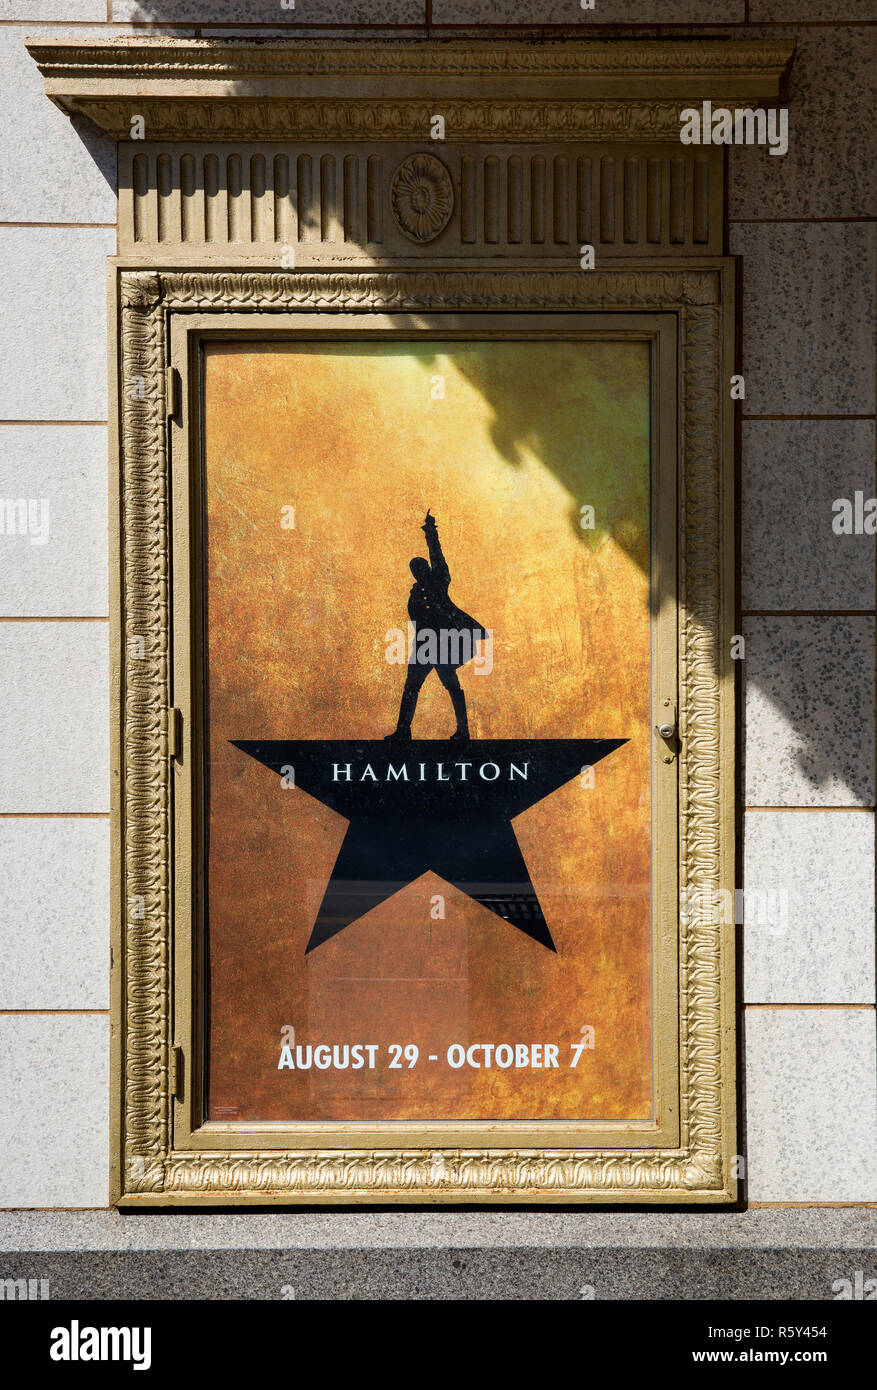 Poster for the musical Hamilton at Orpheum Theatre in Minneapolis, Minnesota - Stock Image